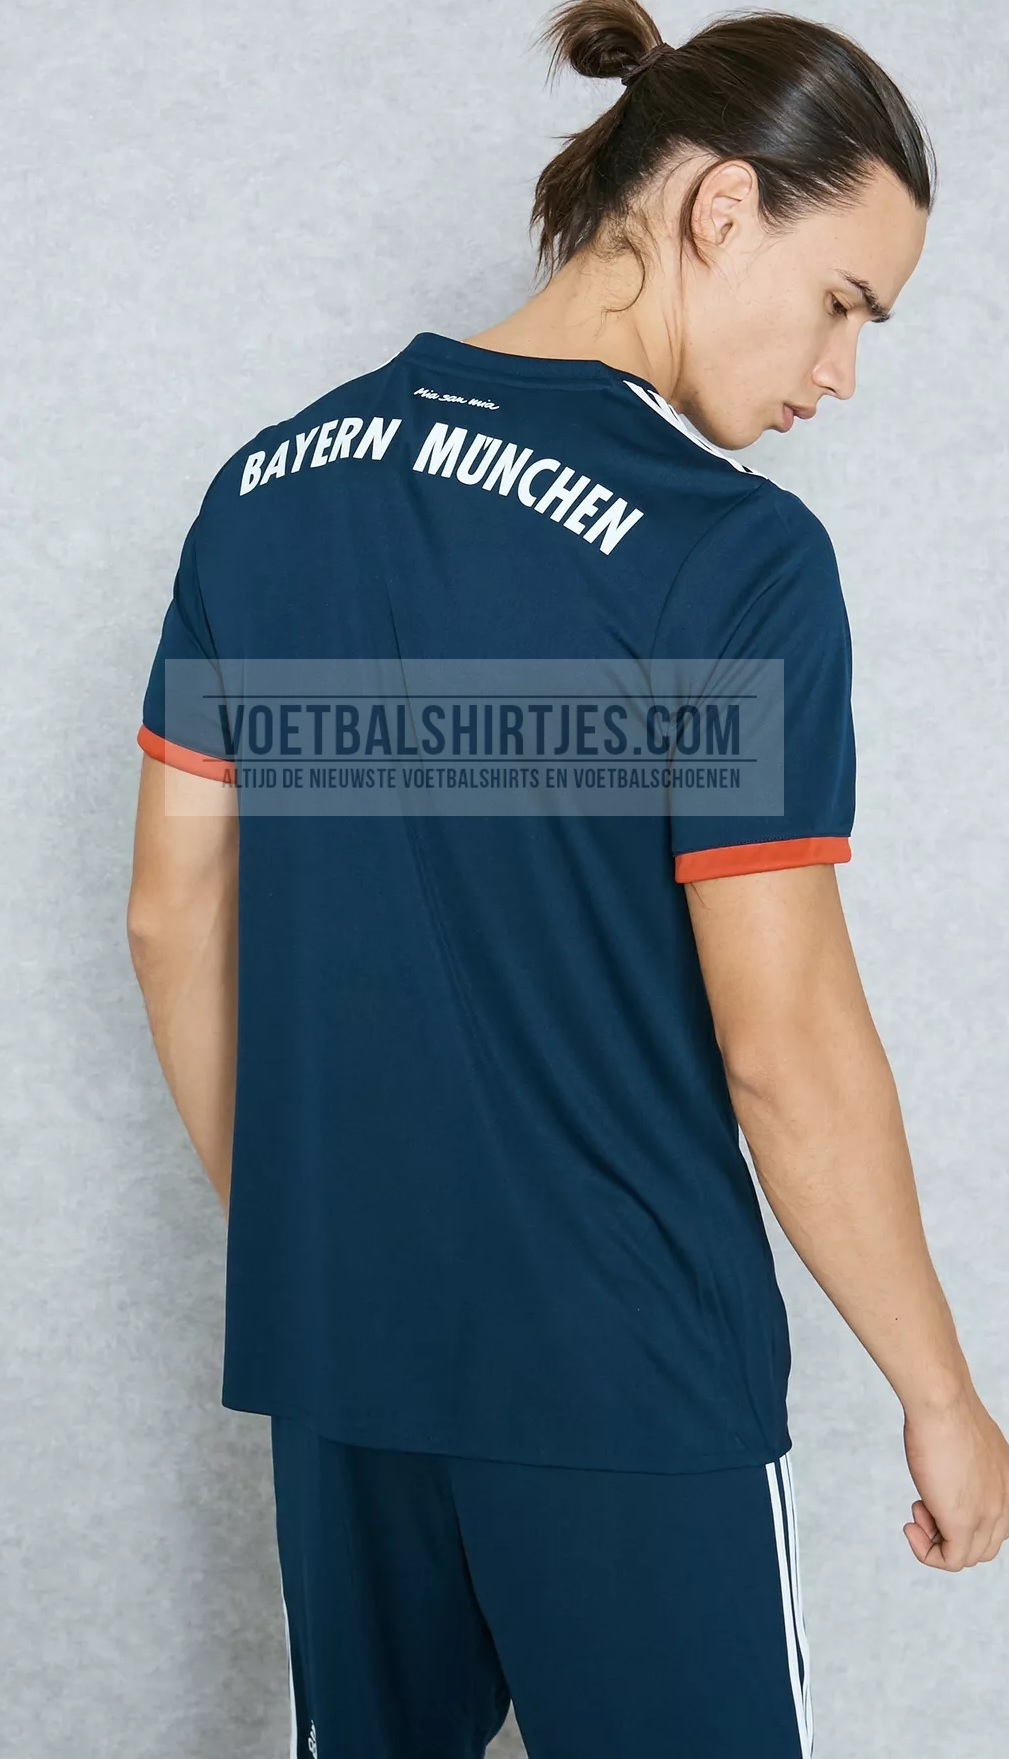 ayern Munchen 17-18 away kit